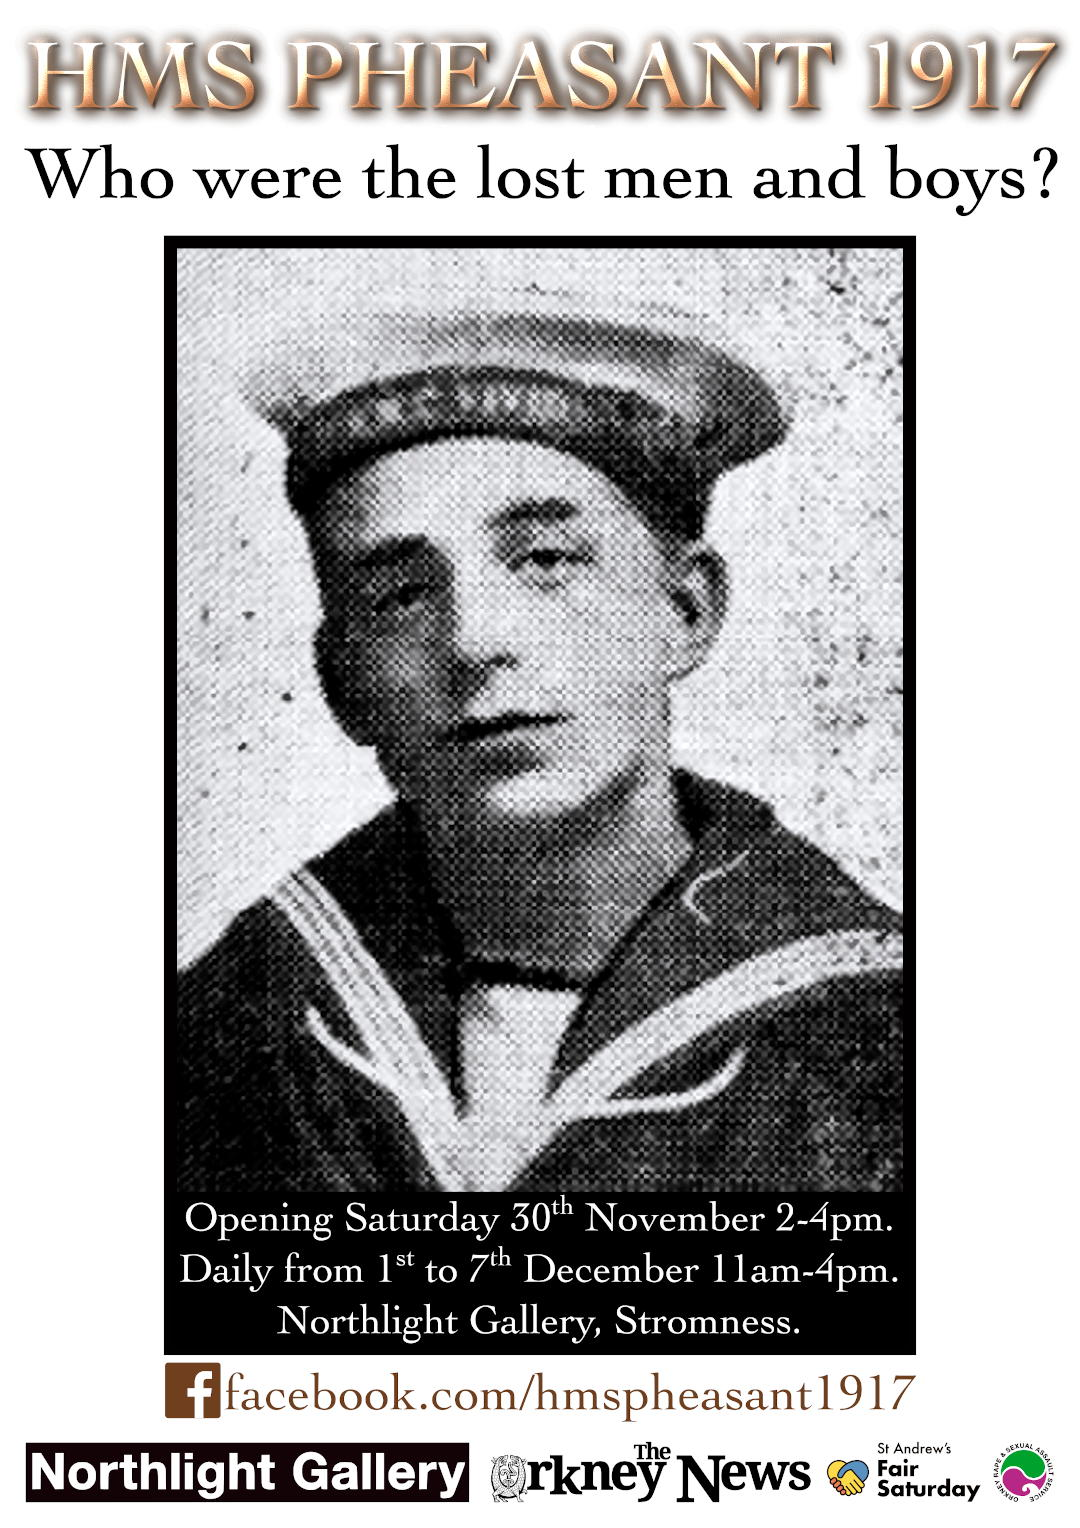 HMS Pheasant 1917: Who were the lost men and boys? Exhibition in association with Orkney Rape and Sexual Assault Service and St. Andrew's Fair Saturday. Opening Saturday Nov. 30th, 2-4pm. Daily from 1st to 7th December, 11am-4pm including Sunday. Northlight Gallery, Stromness. facebook.com/hmspheasant1917